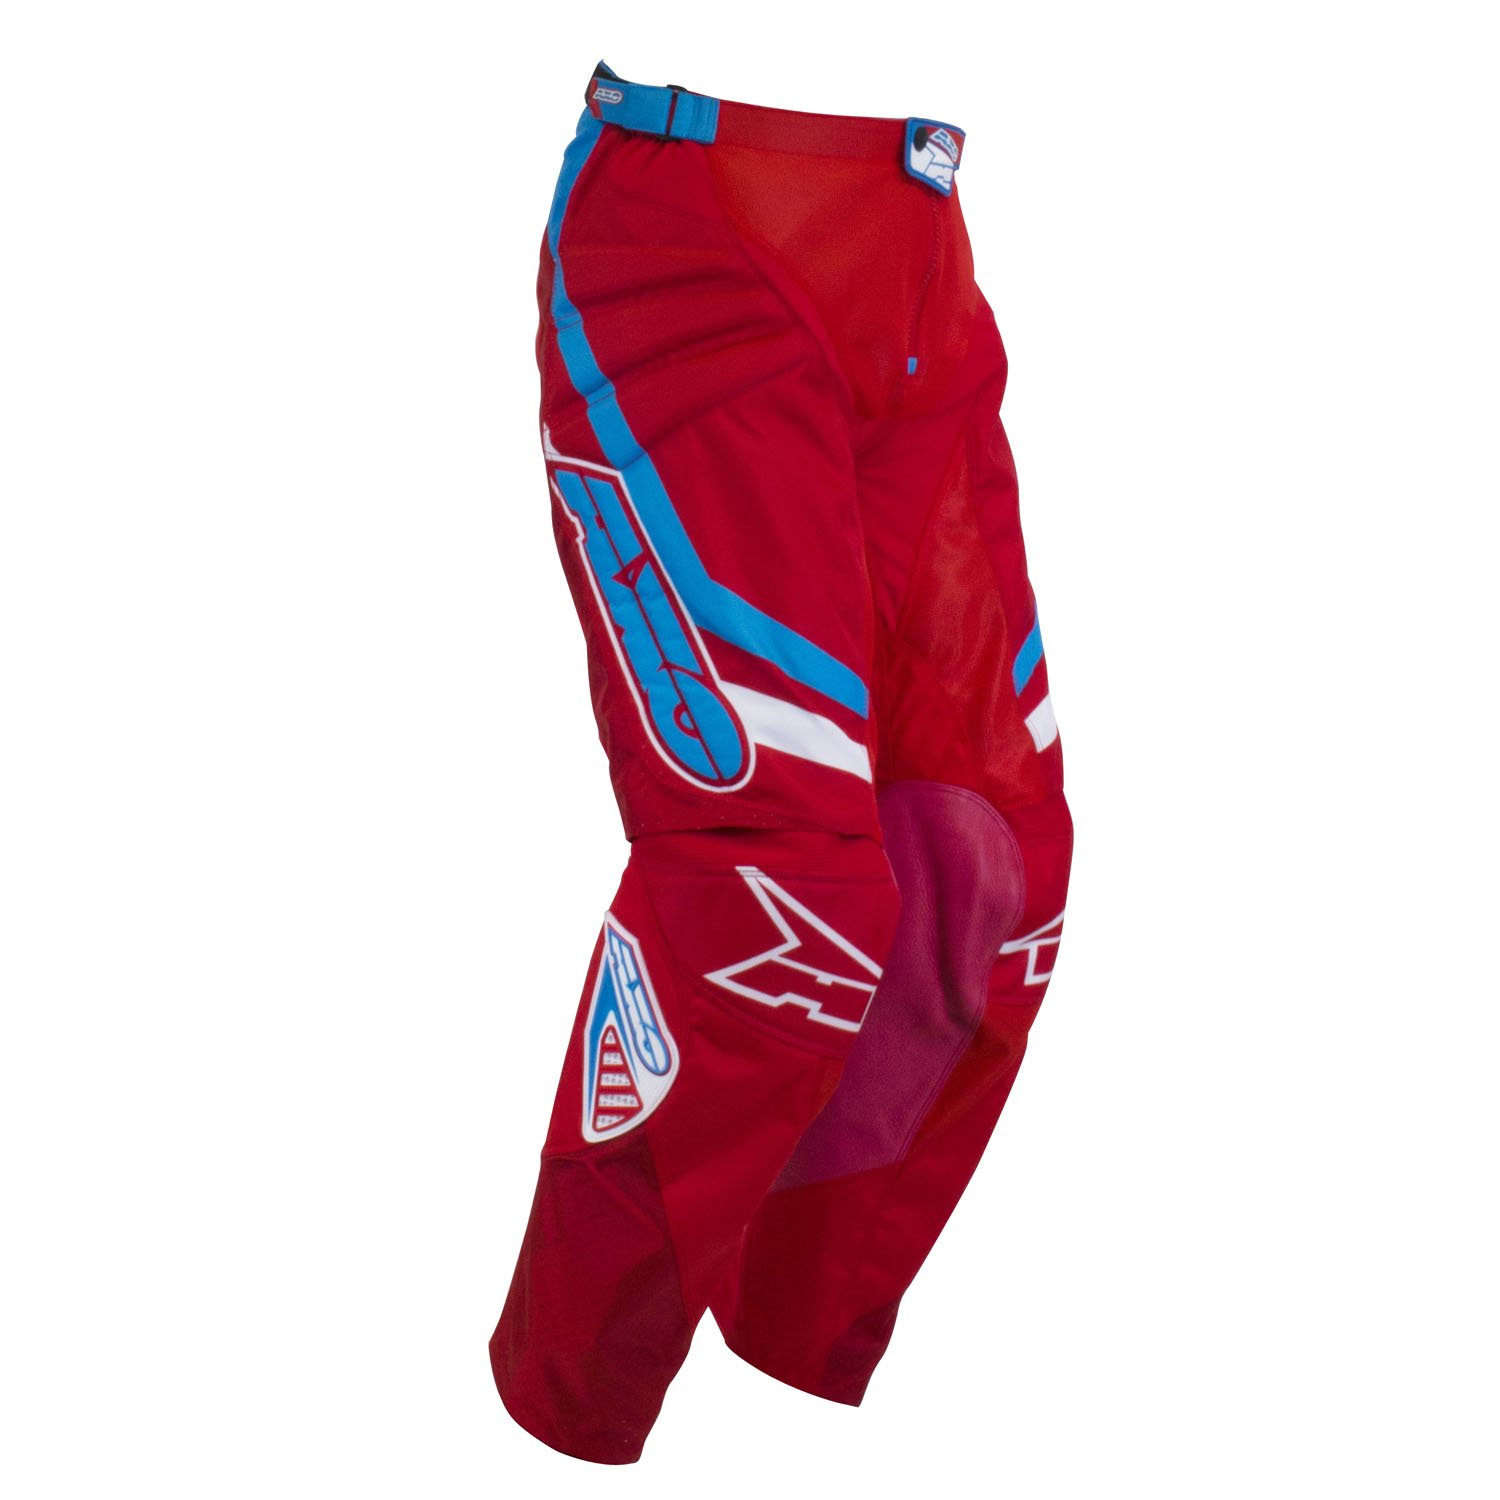 AXO 13516-23-036 Unisex-Adult Trans-Am Pants (Red/White/Blue, Size 36)